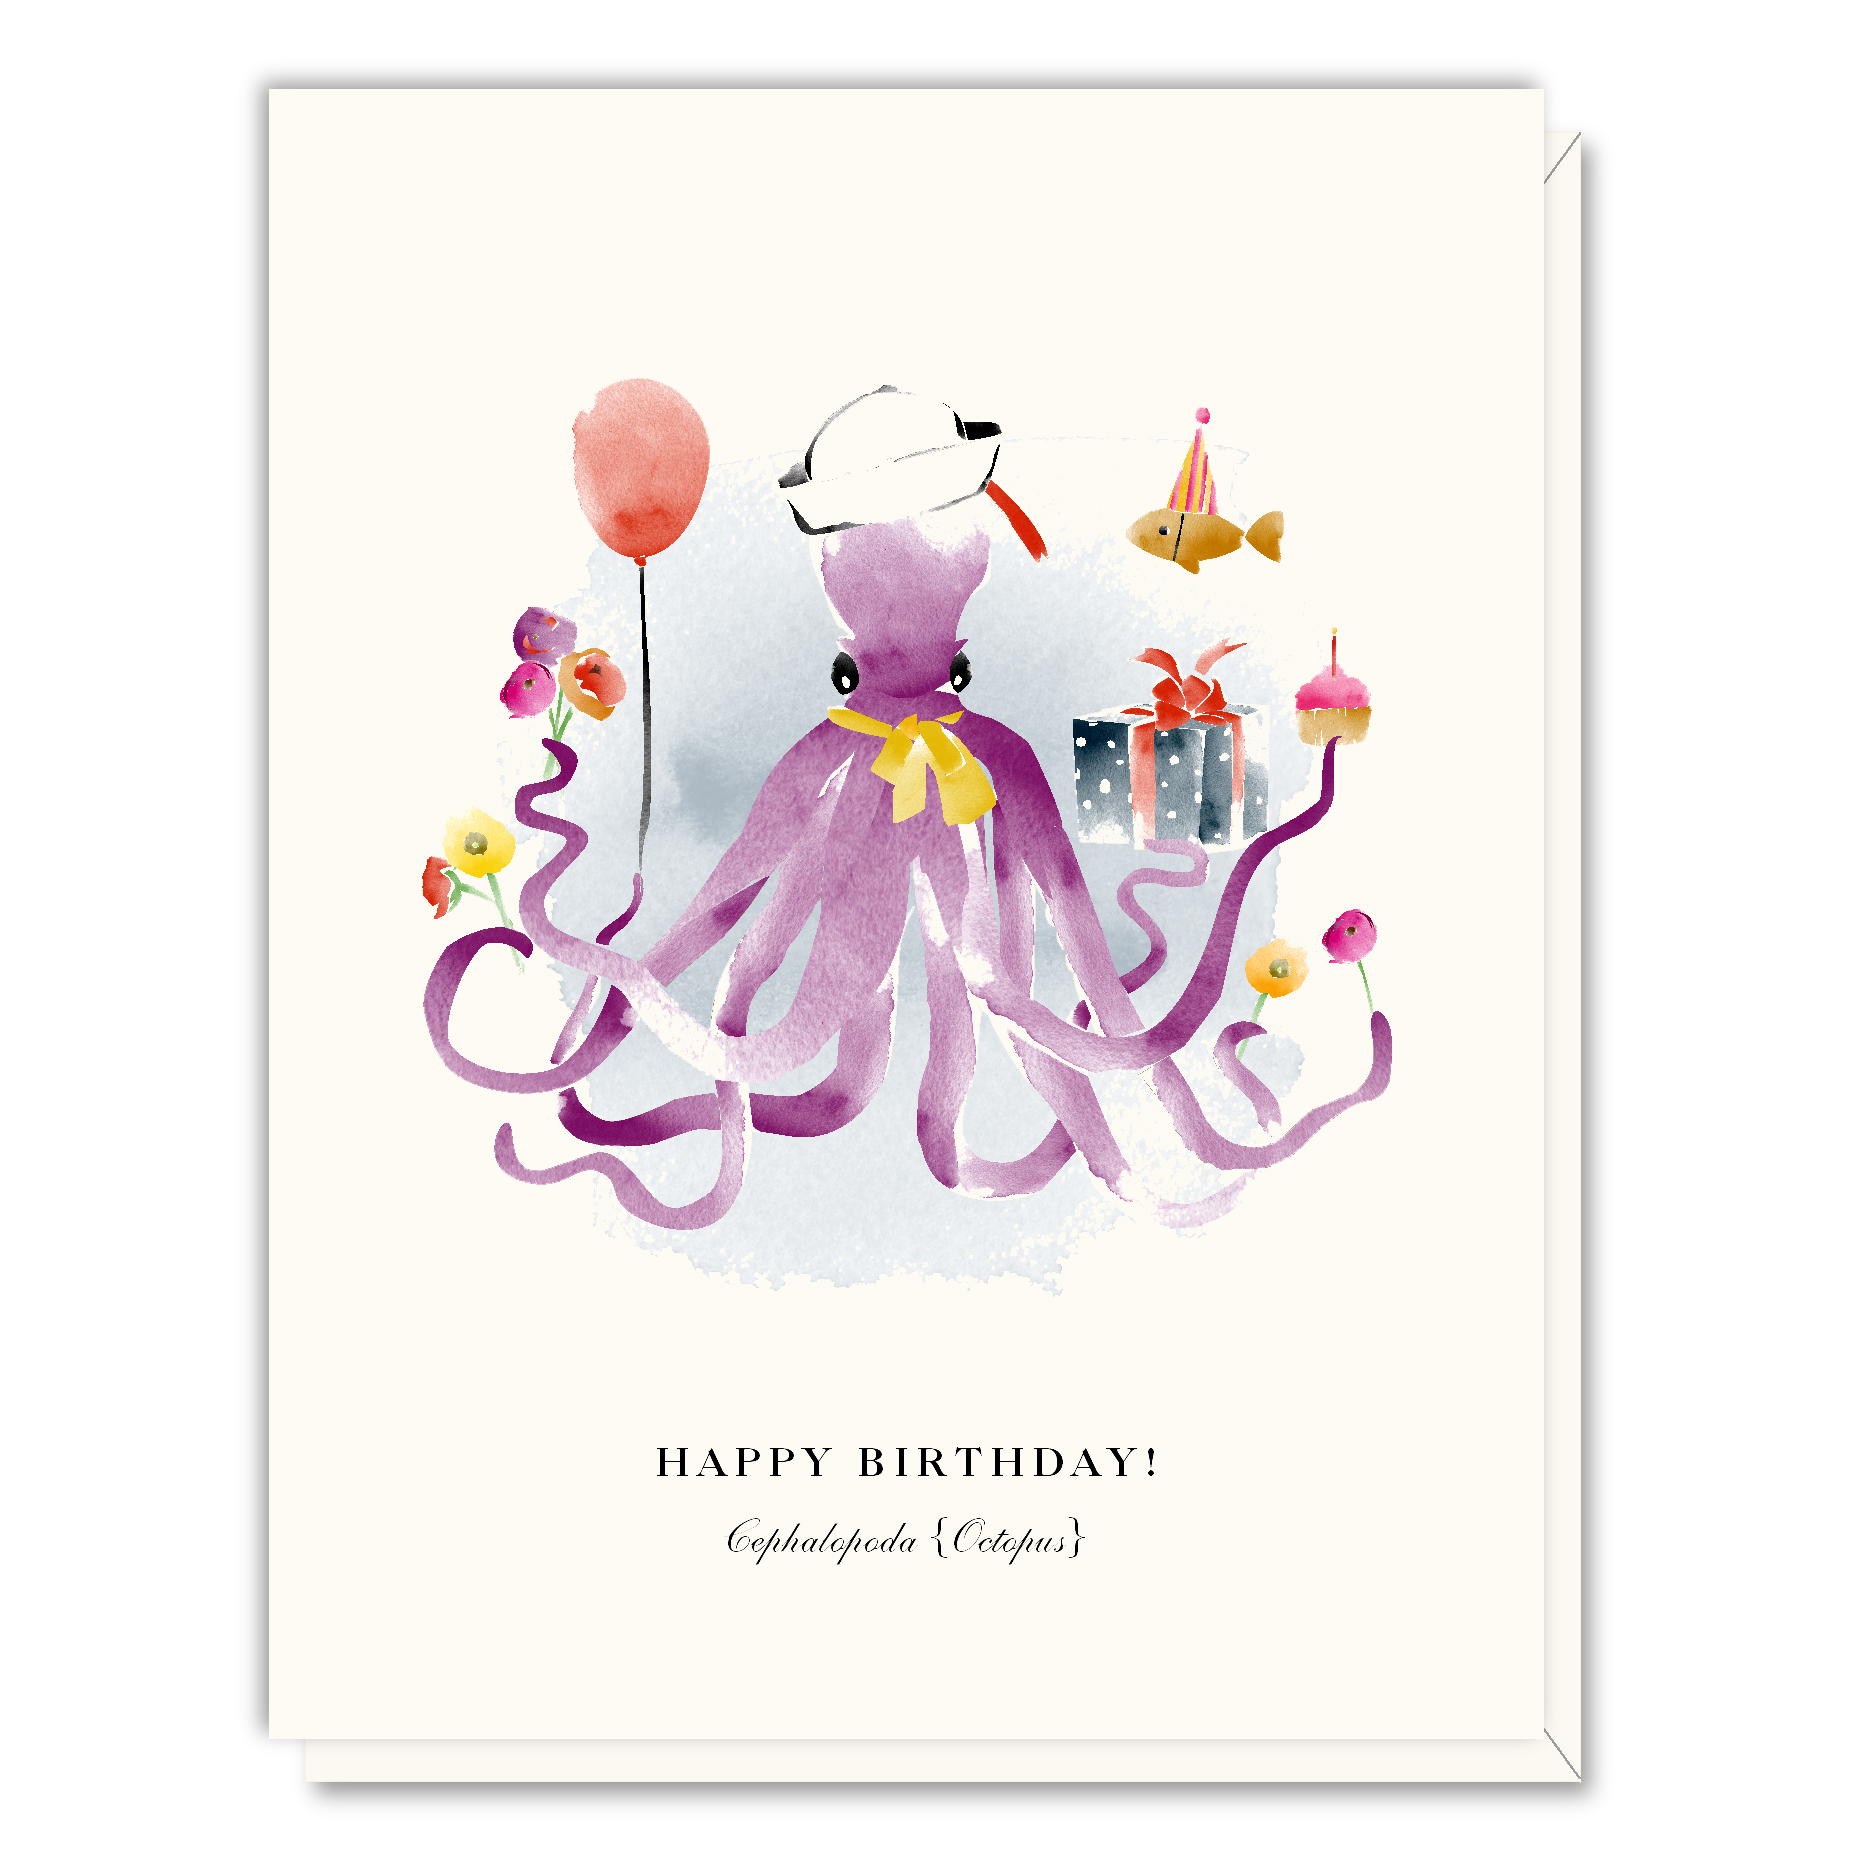 A053 Birthday Octopus.jpg